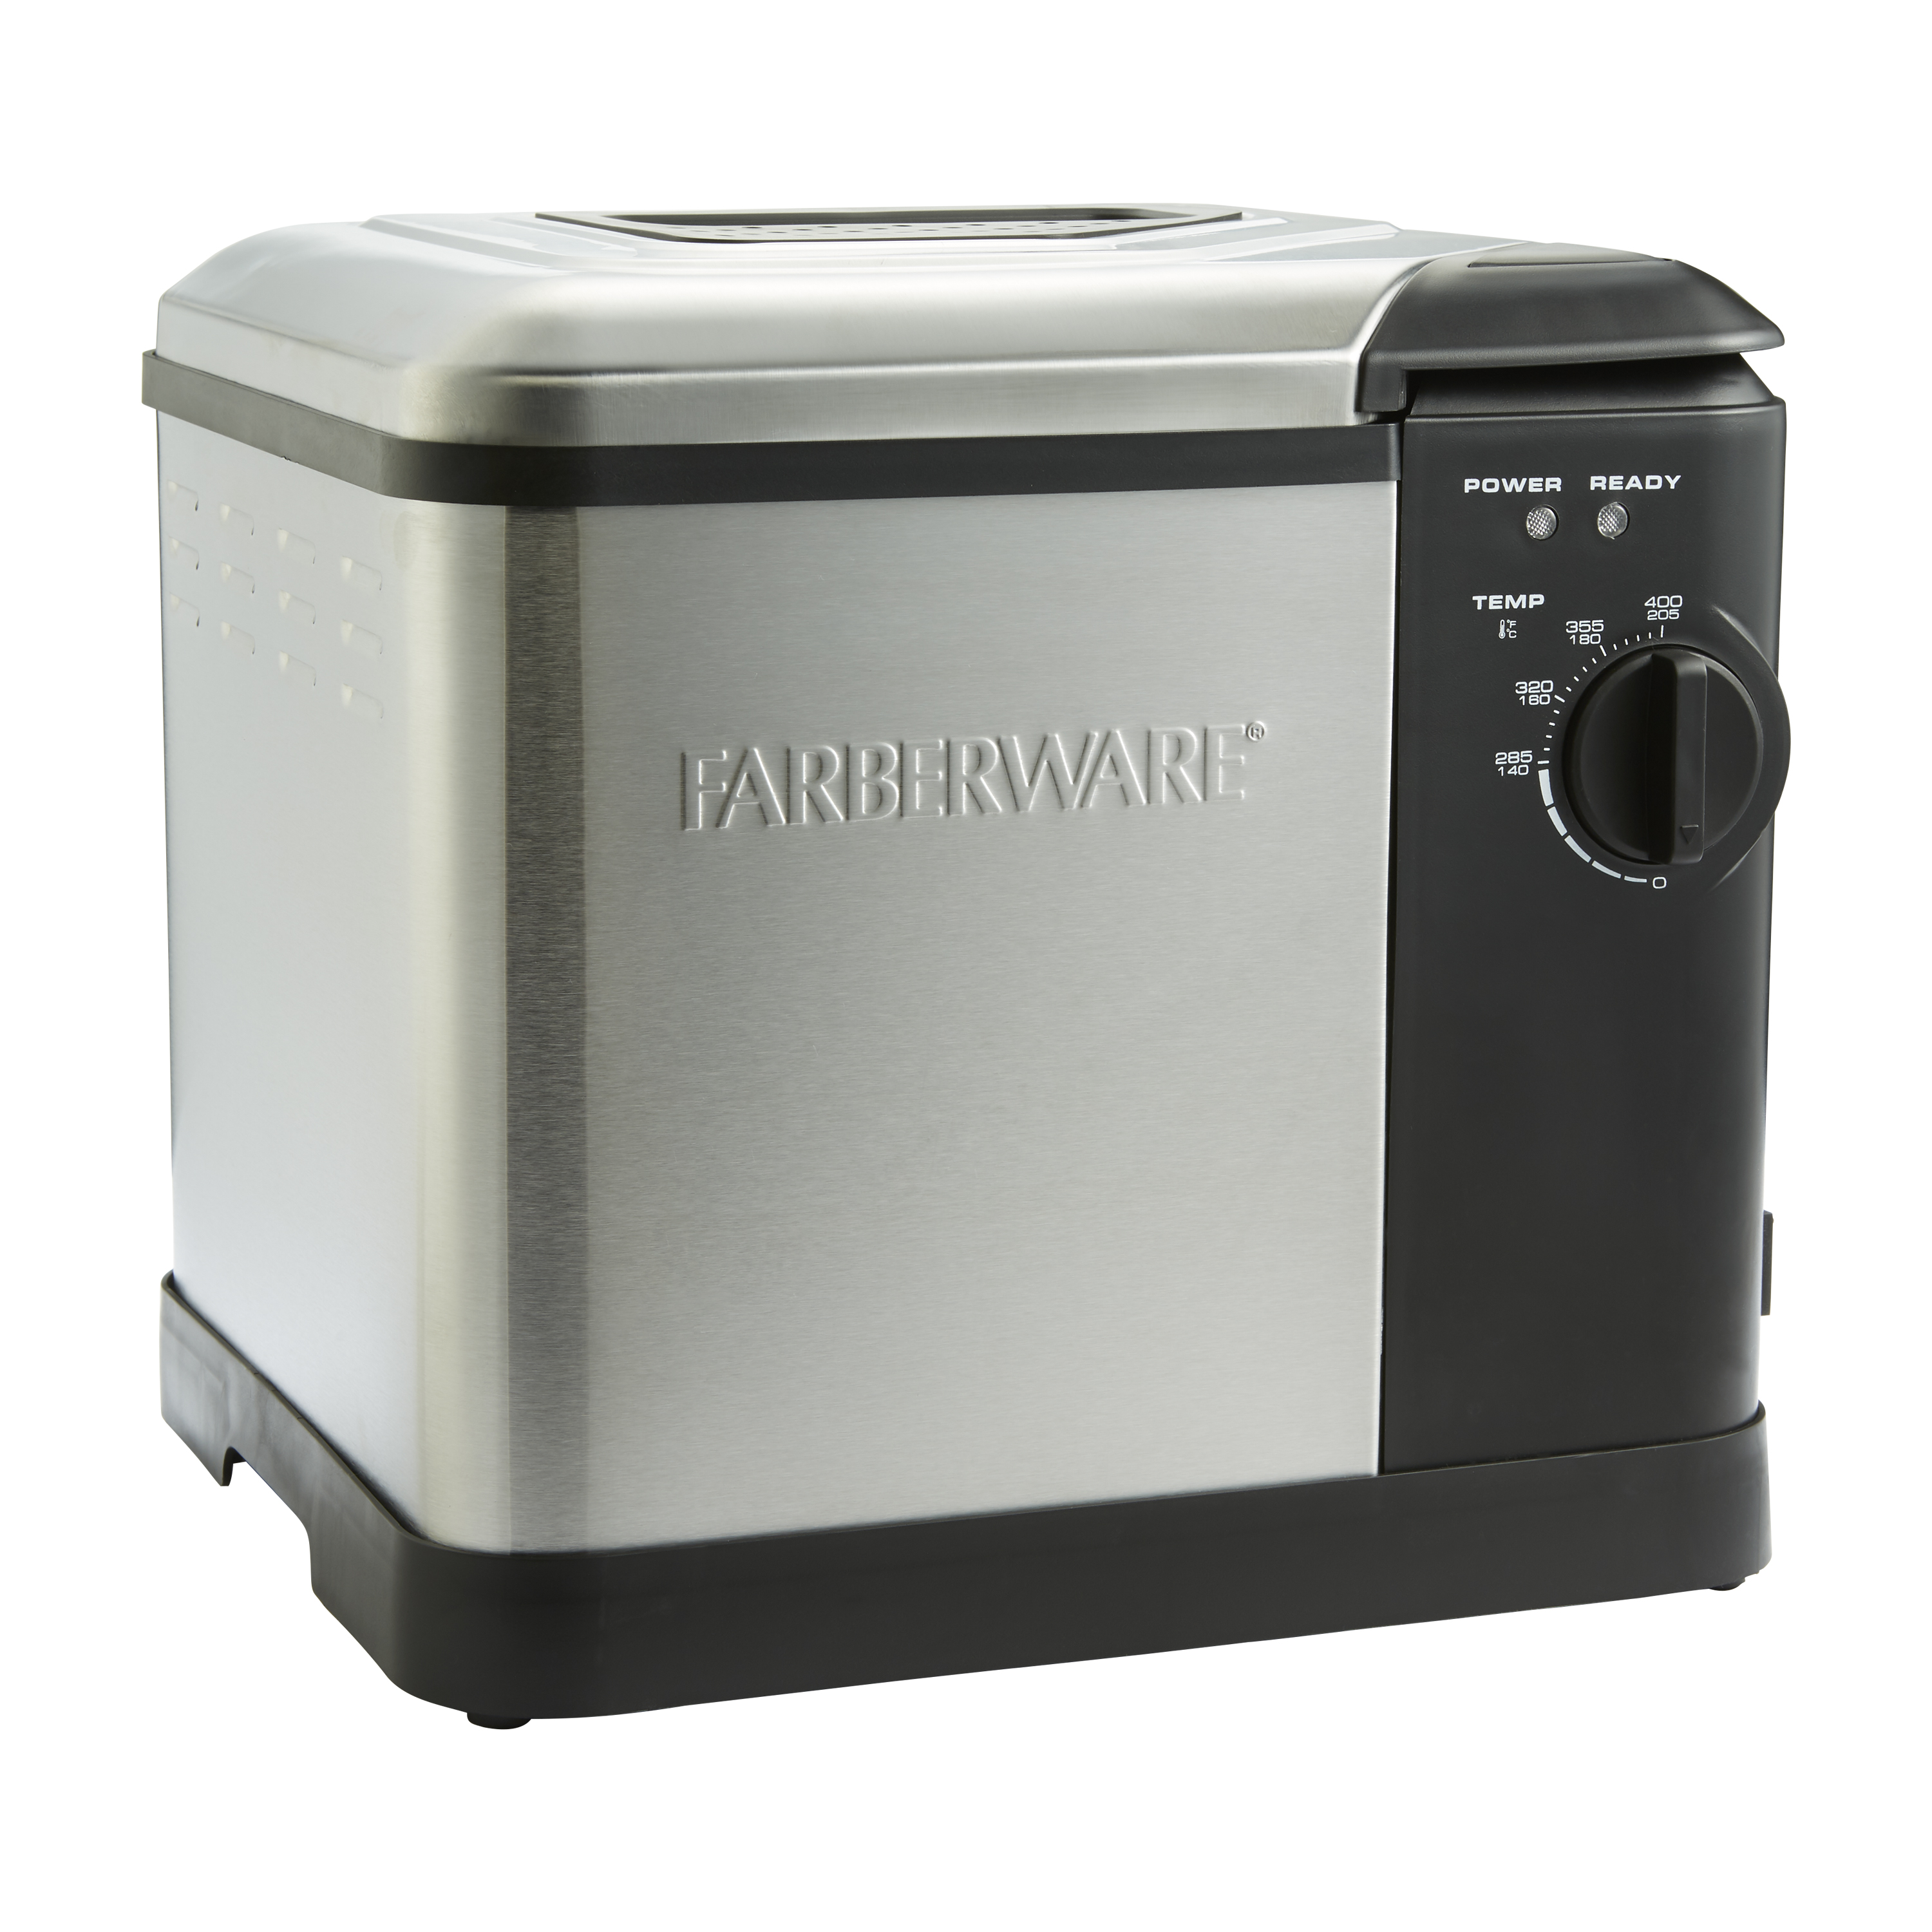 Farberware XL 14-lbs. Indoor Turkey Deep Fryer